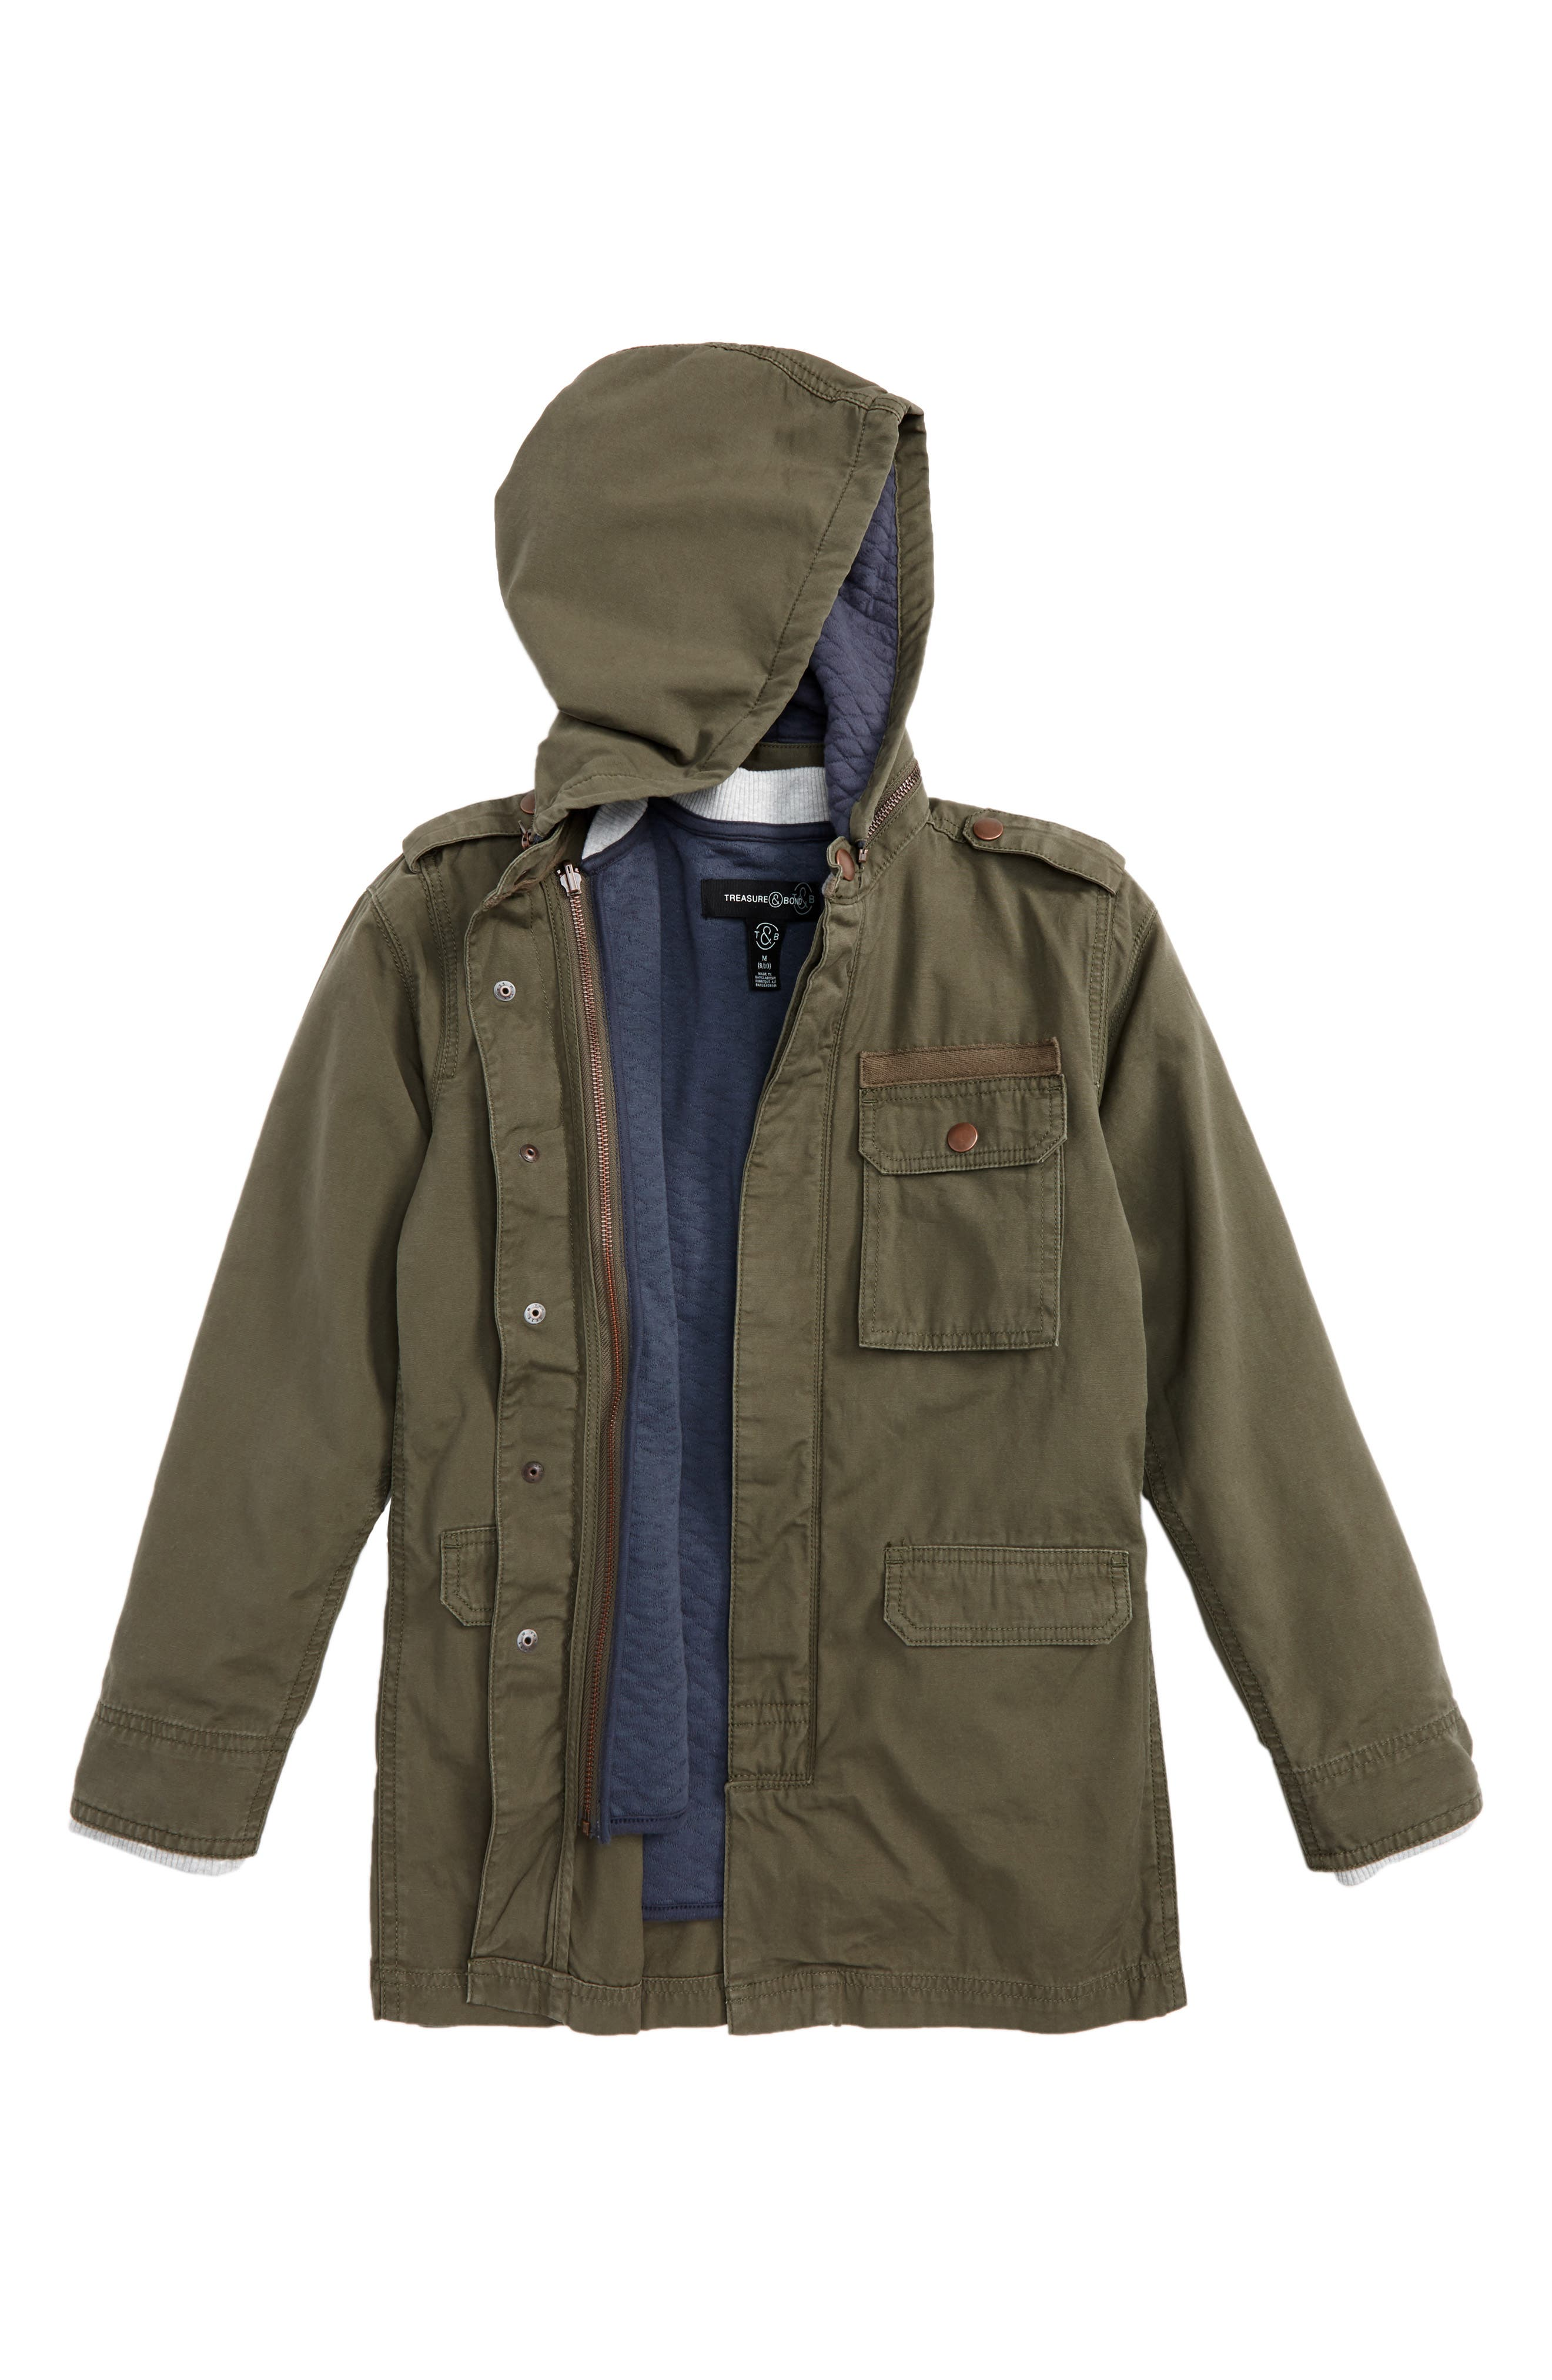 2-in-1 Hooded Military Jacket,                             Main thumbnail 1, color,                             311